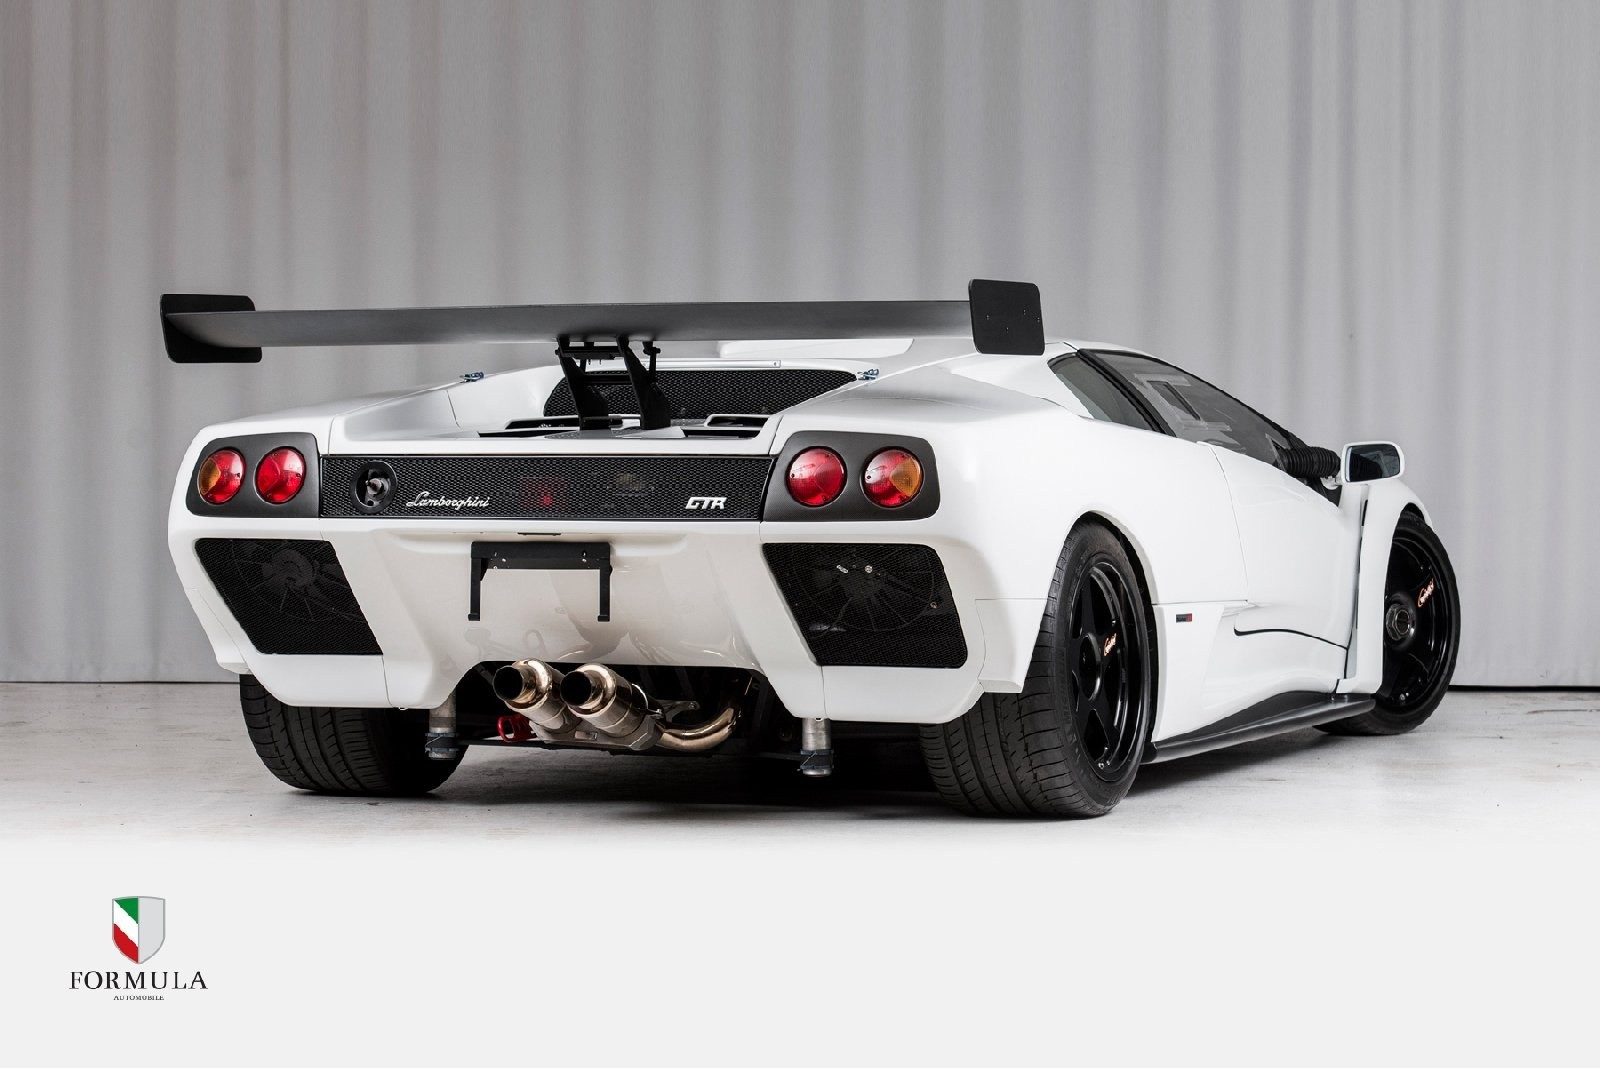 Track Only Lamborghini Diablo Gtr Listed For Sale In